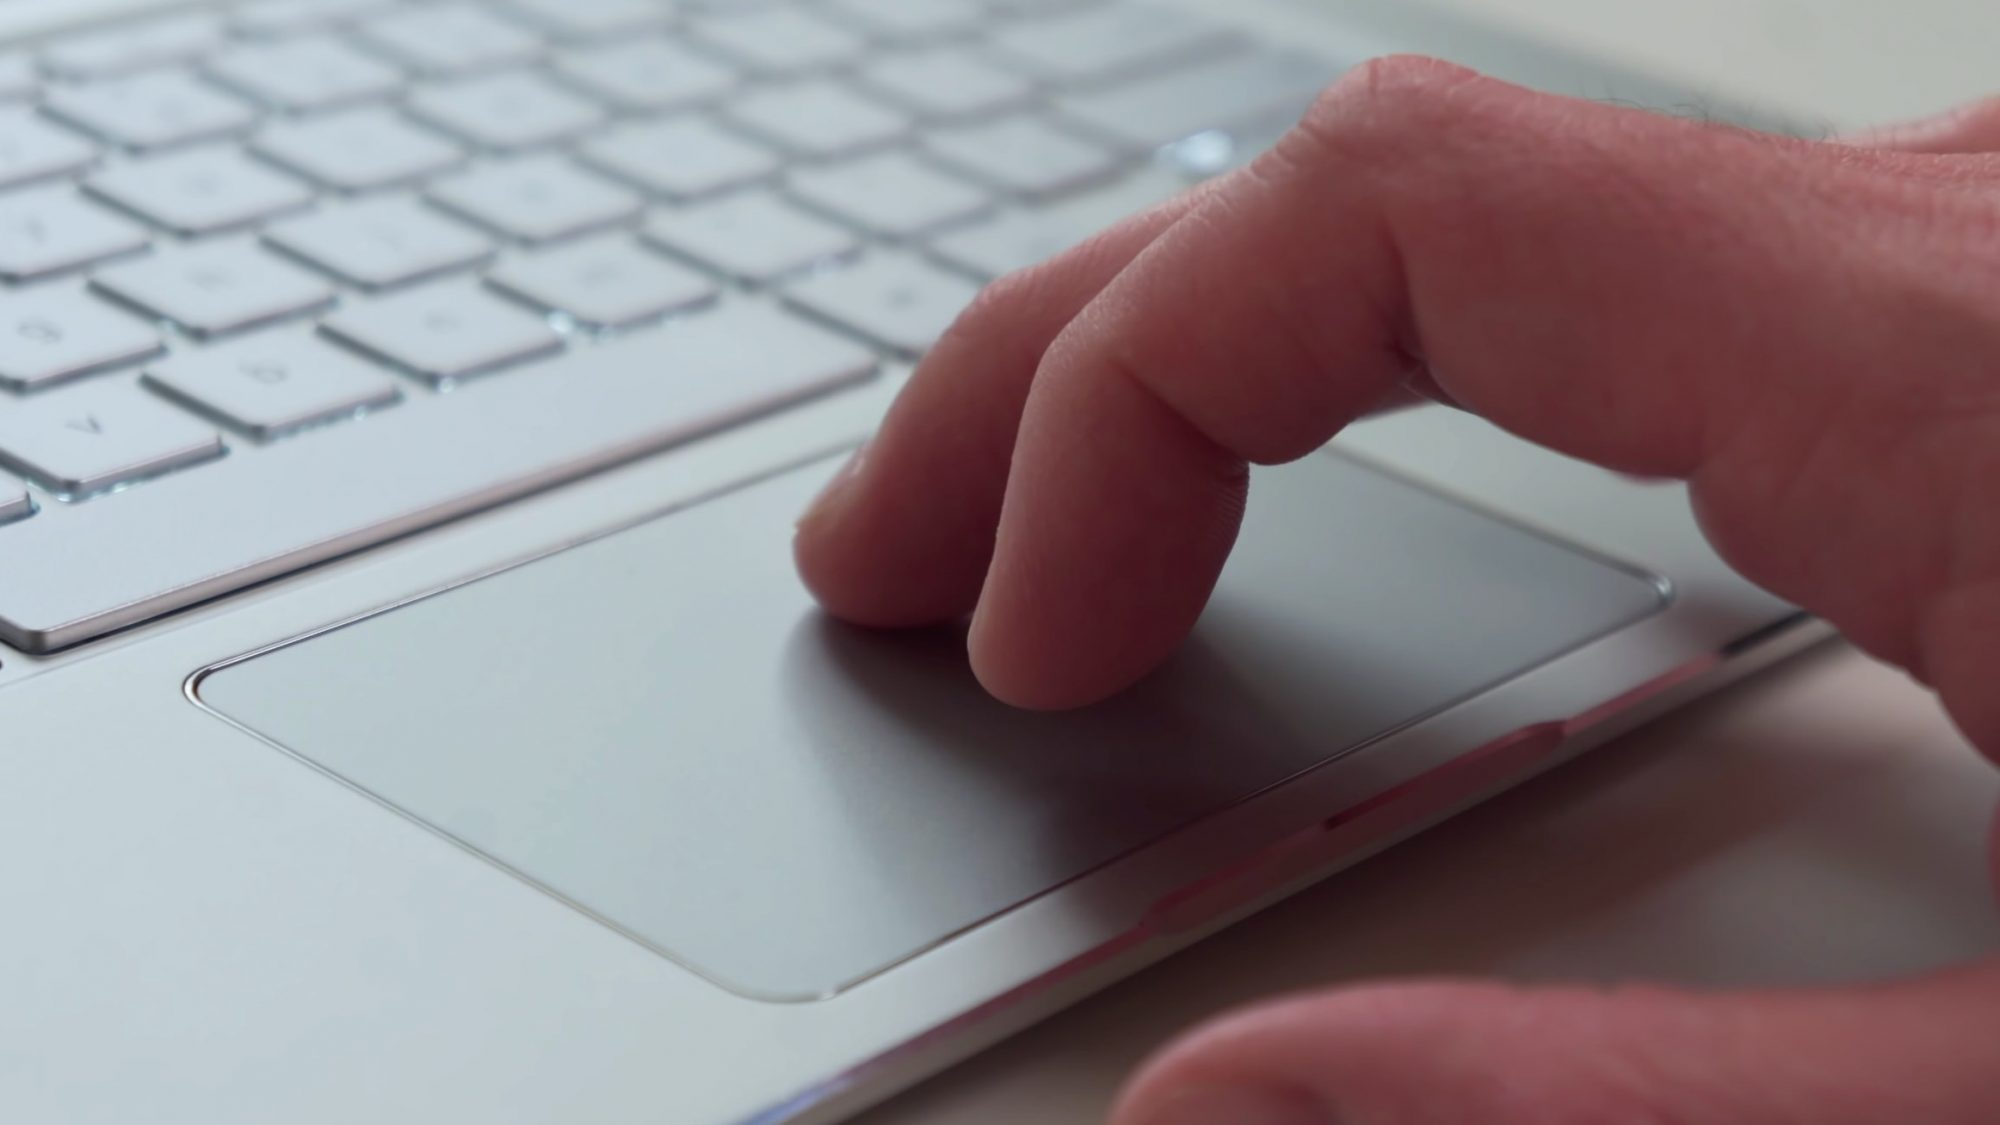 Massive UI change coming to Chromebook trackpads